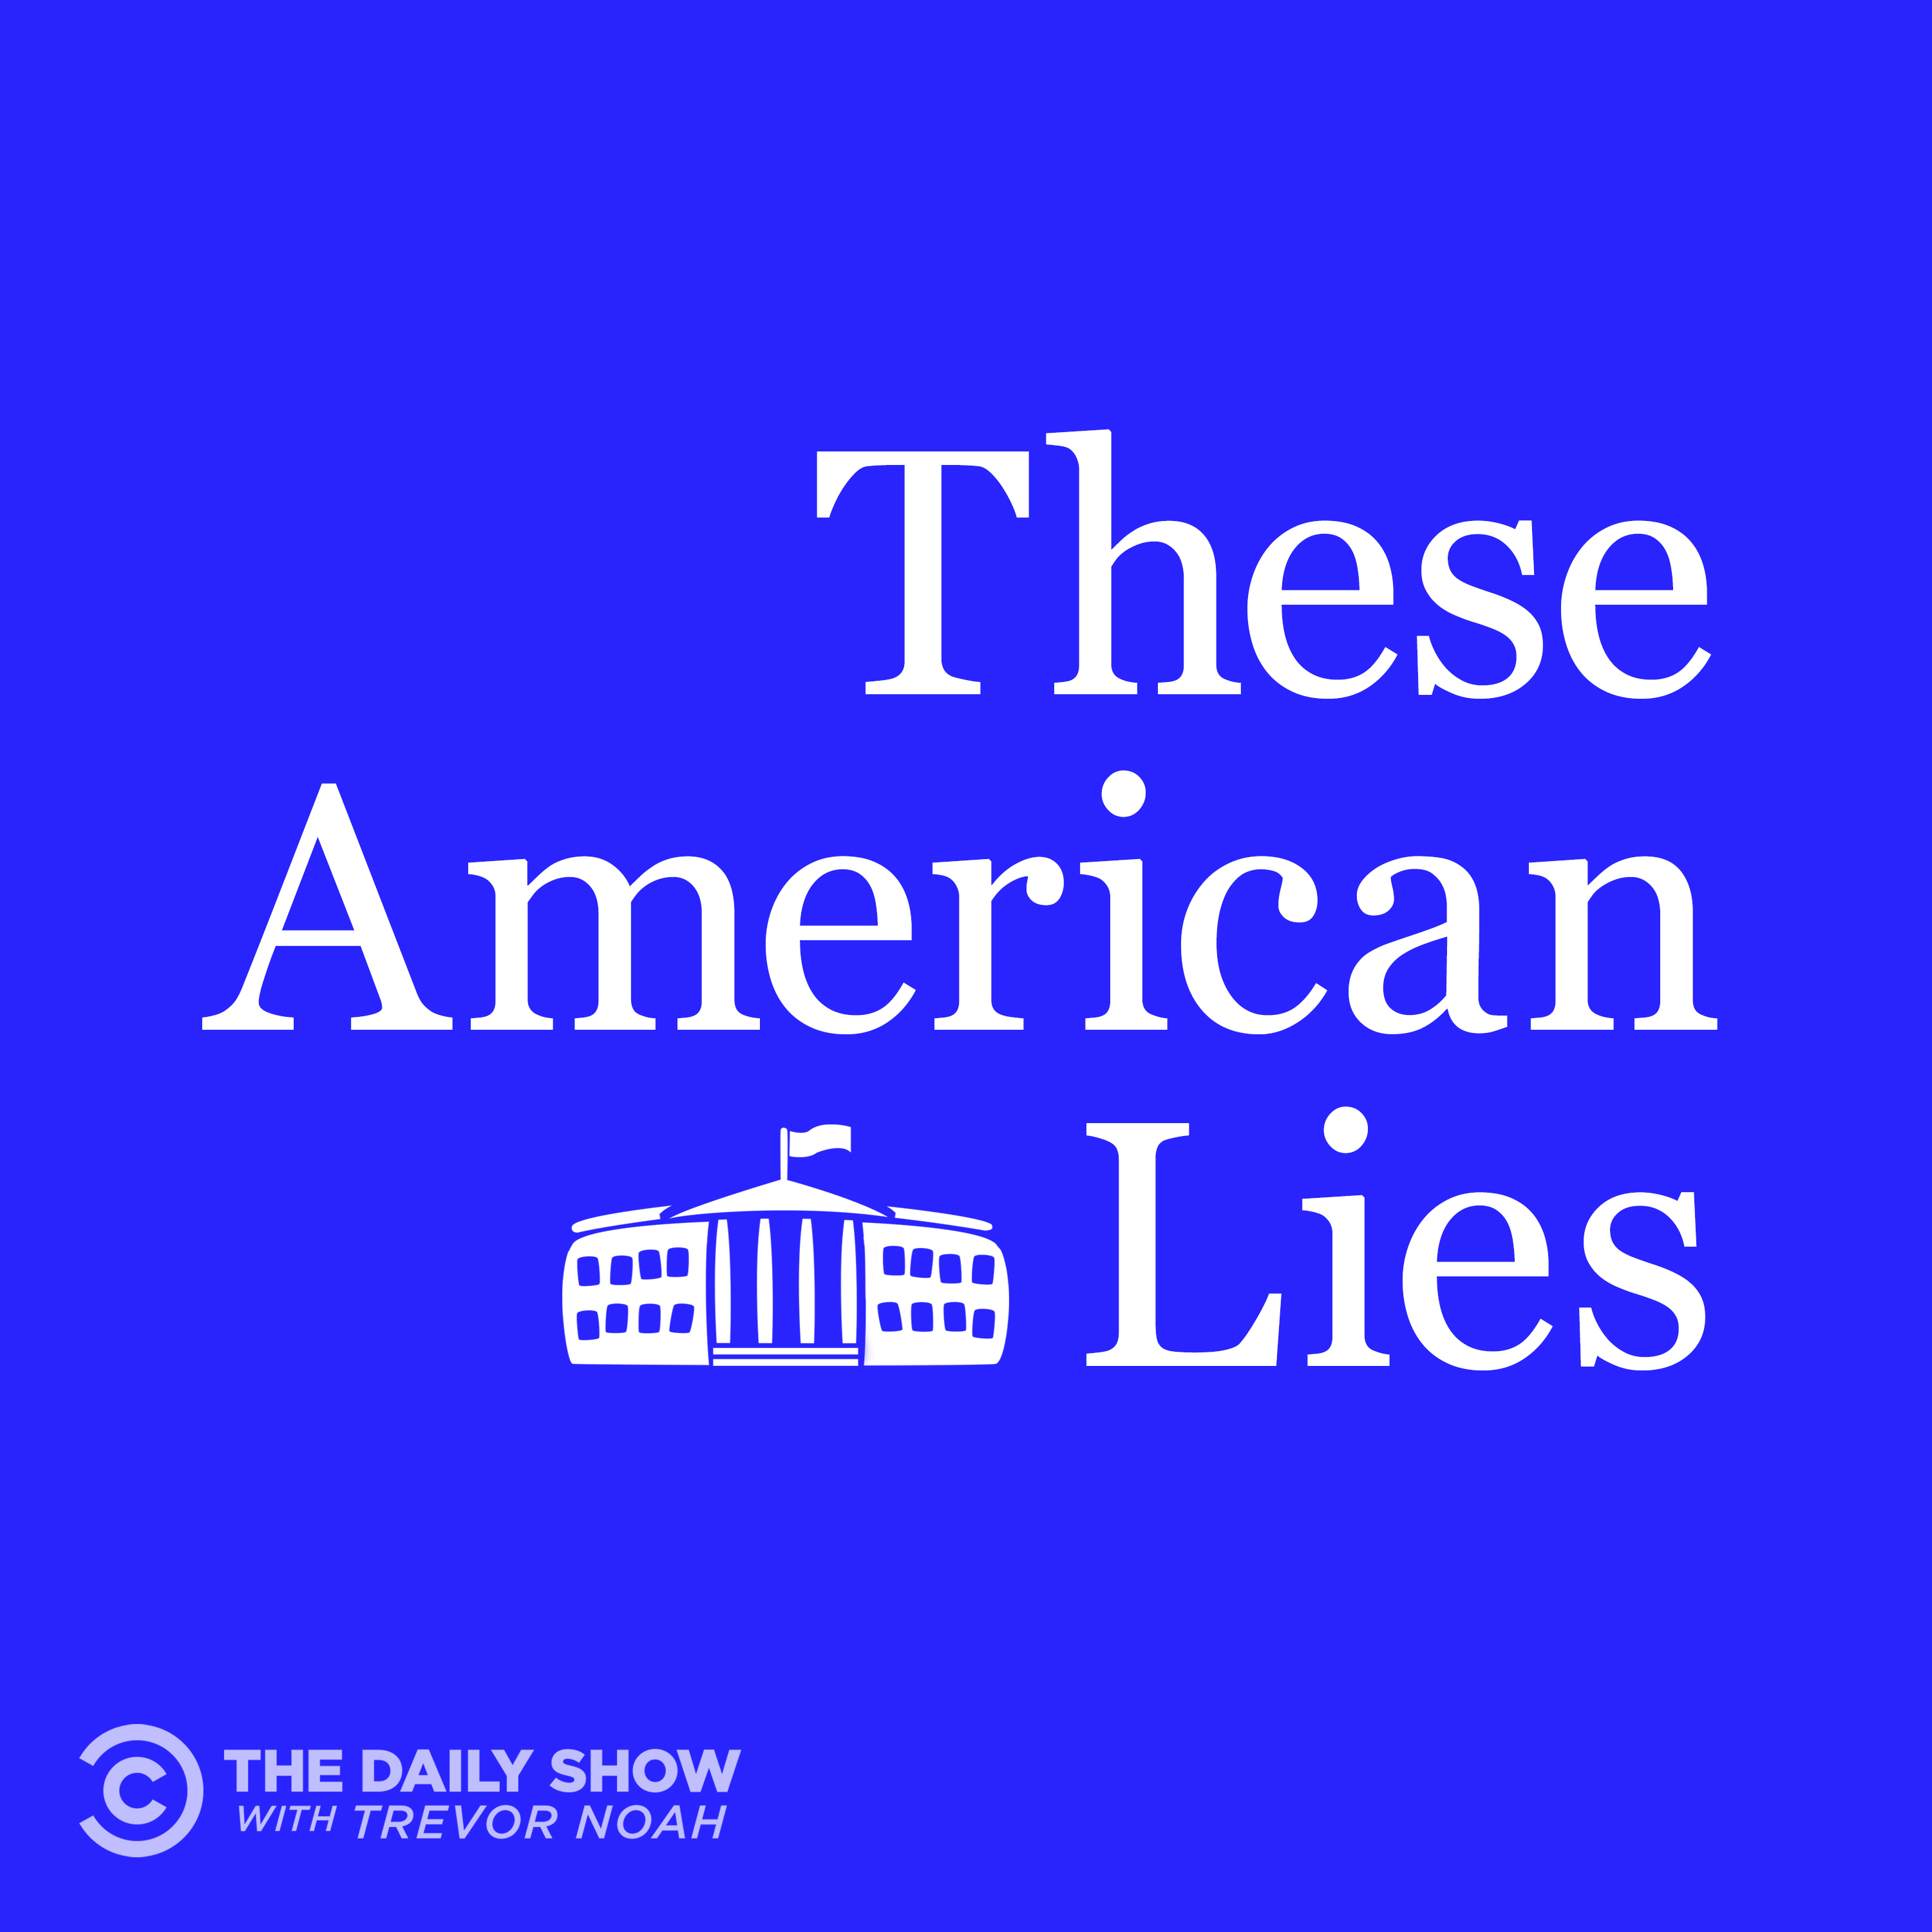 Introducing The Daily Show Podcast Universe Episode 1: These American Lies